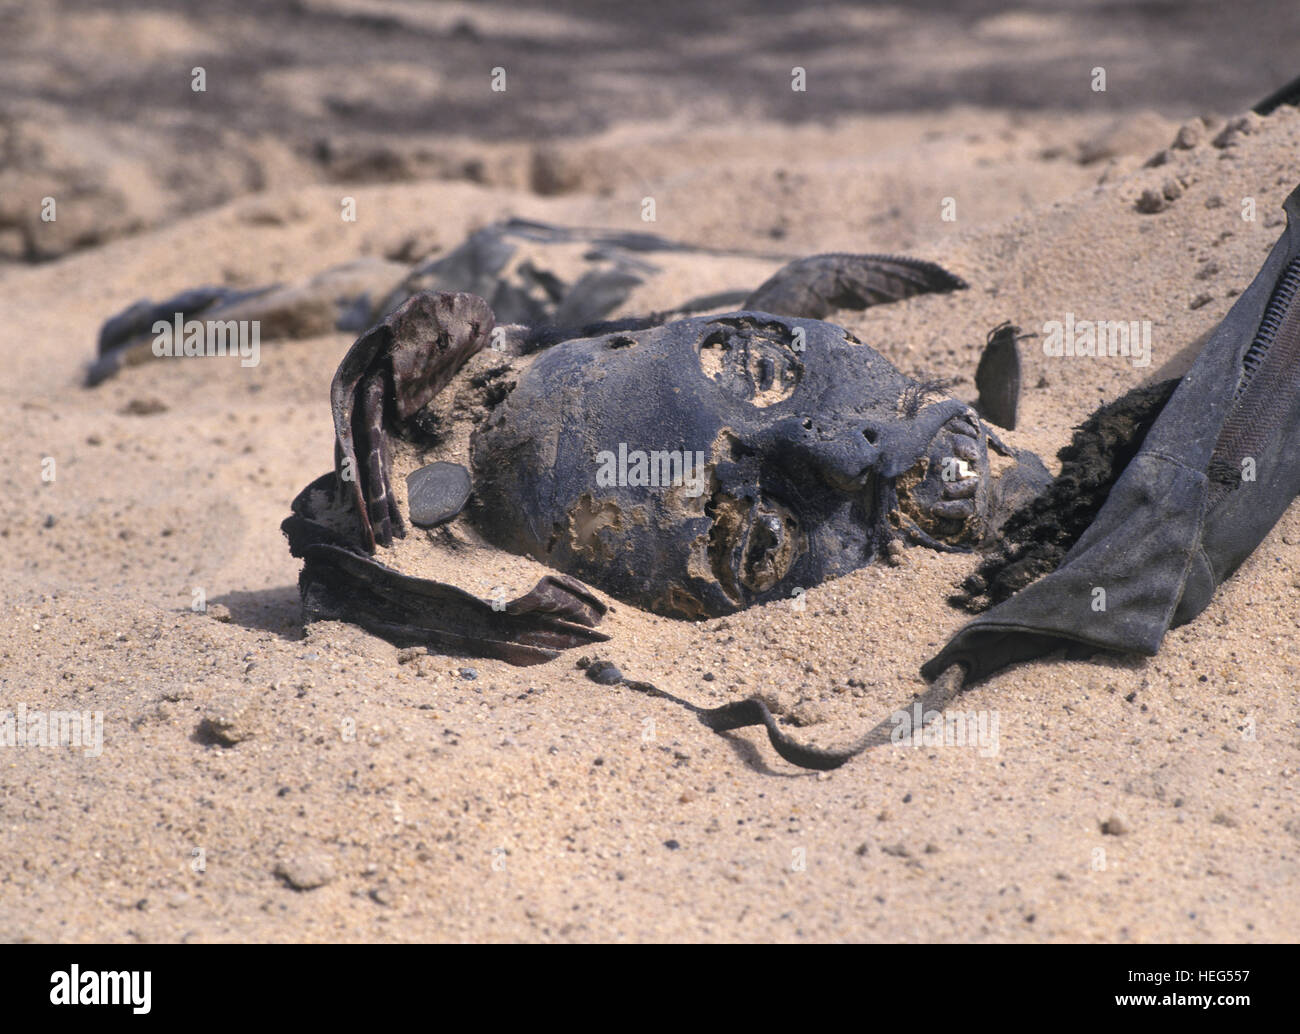 Head of dead Iraqi soldier at the end of Gulf War, Kuwait desert. Kuwait - Stock Image